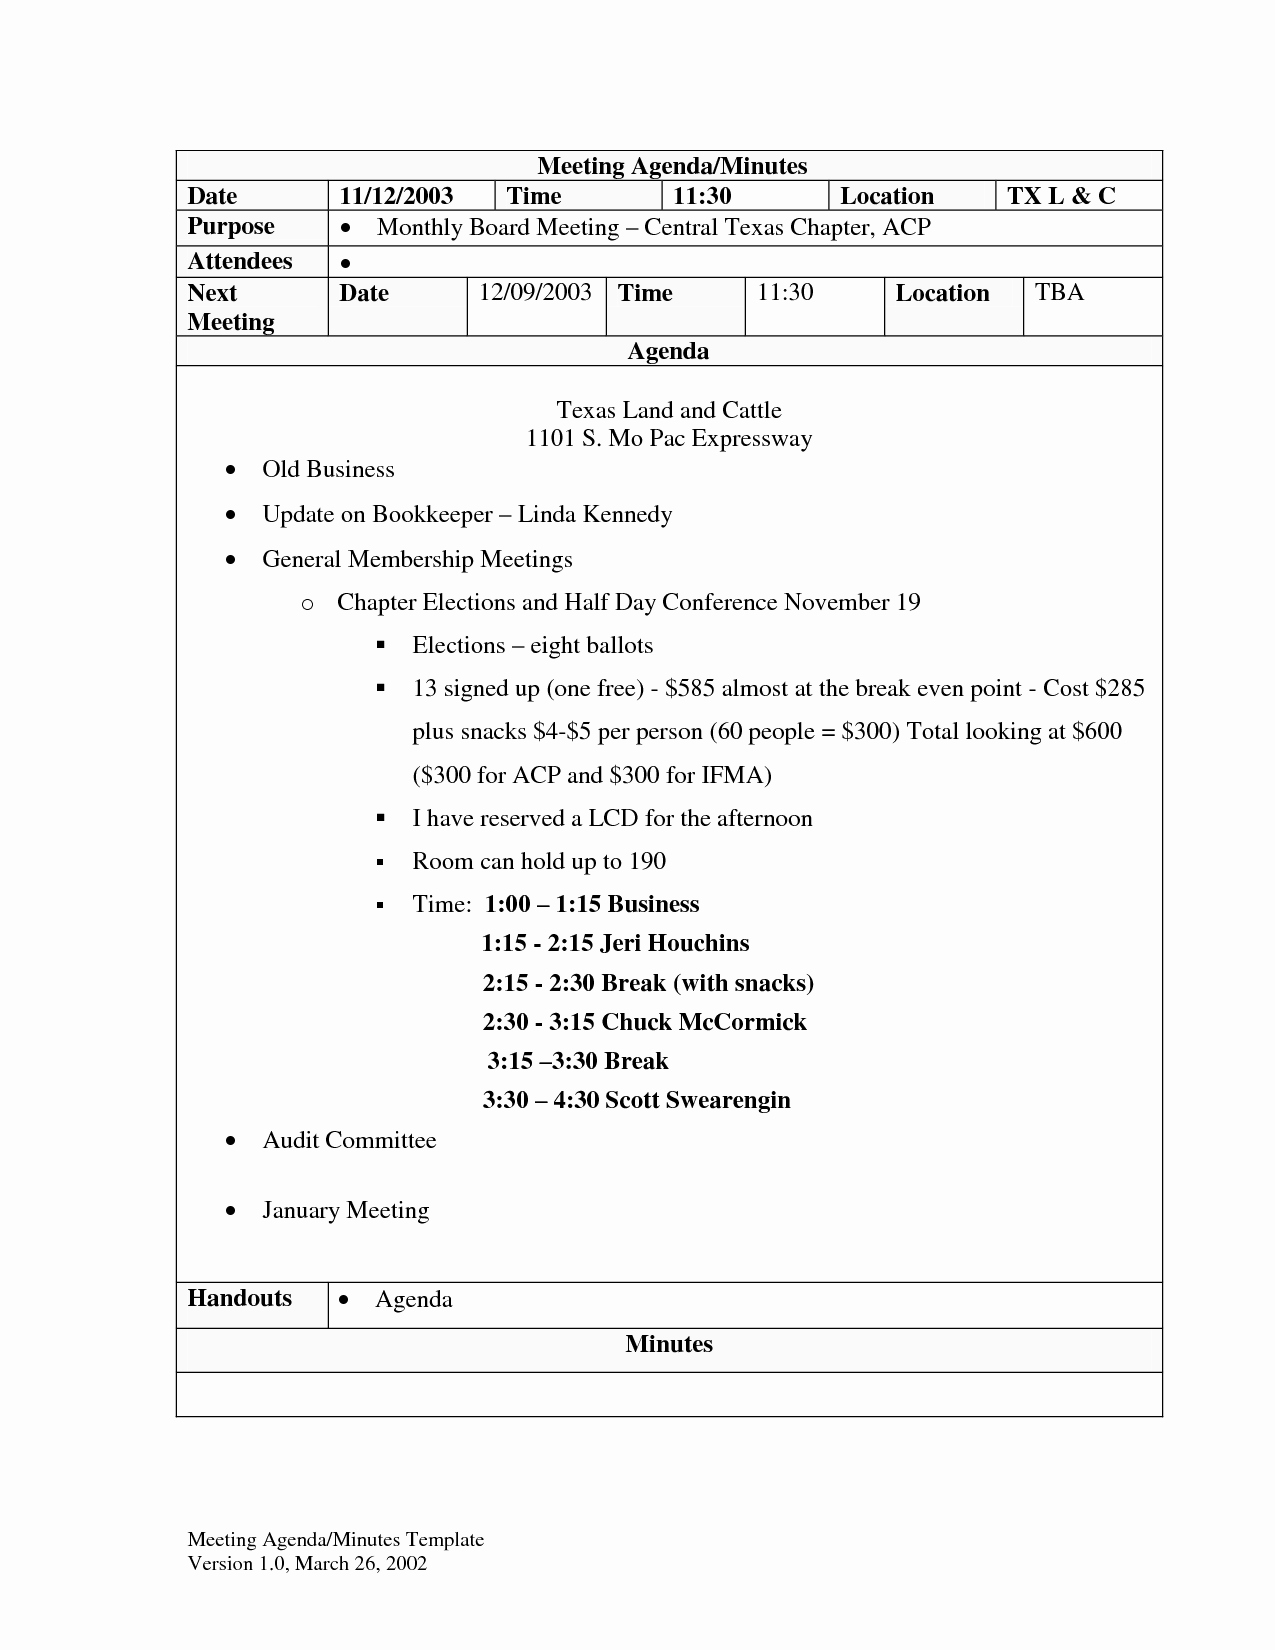 Meeting Agenda with Notes Template New Best S Of Sample Meeting Agenda and Minutes Meeting